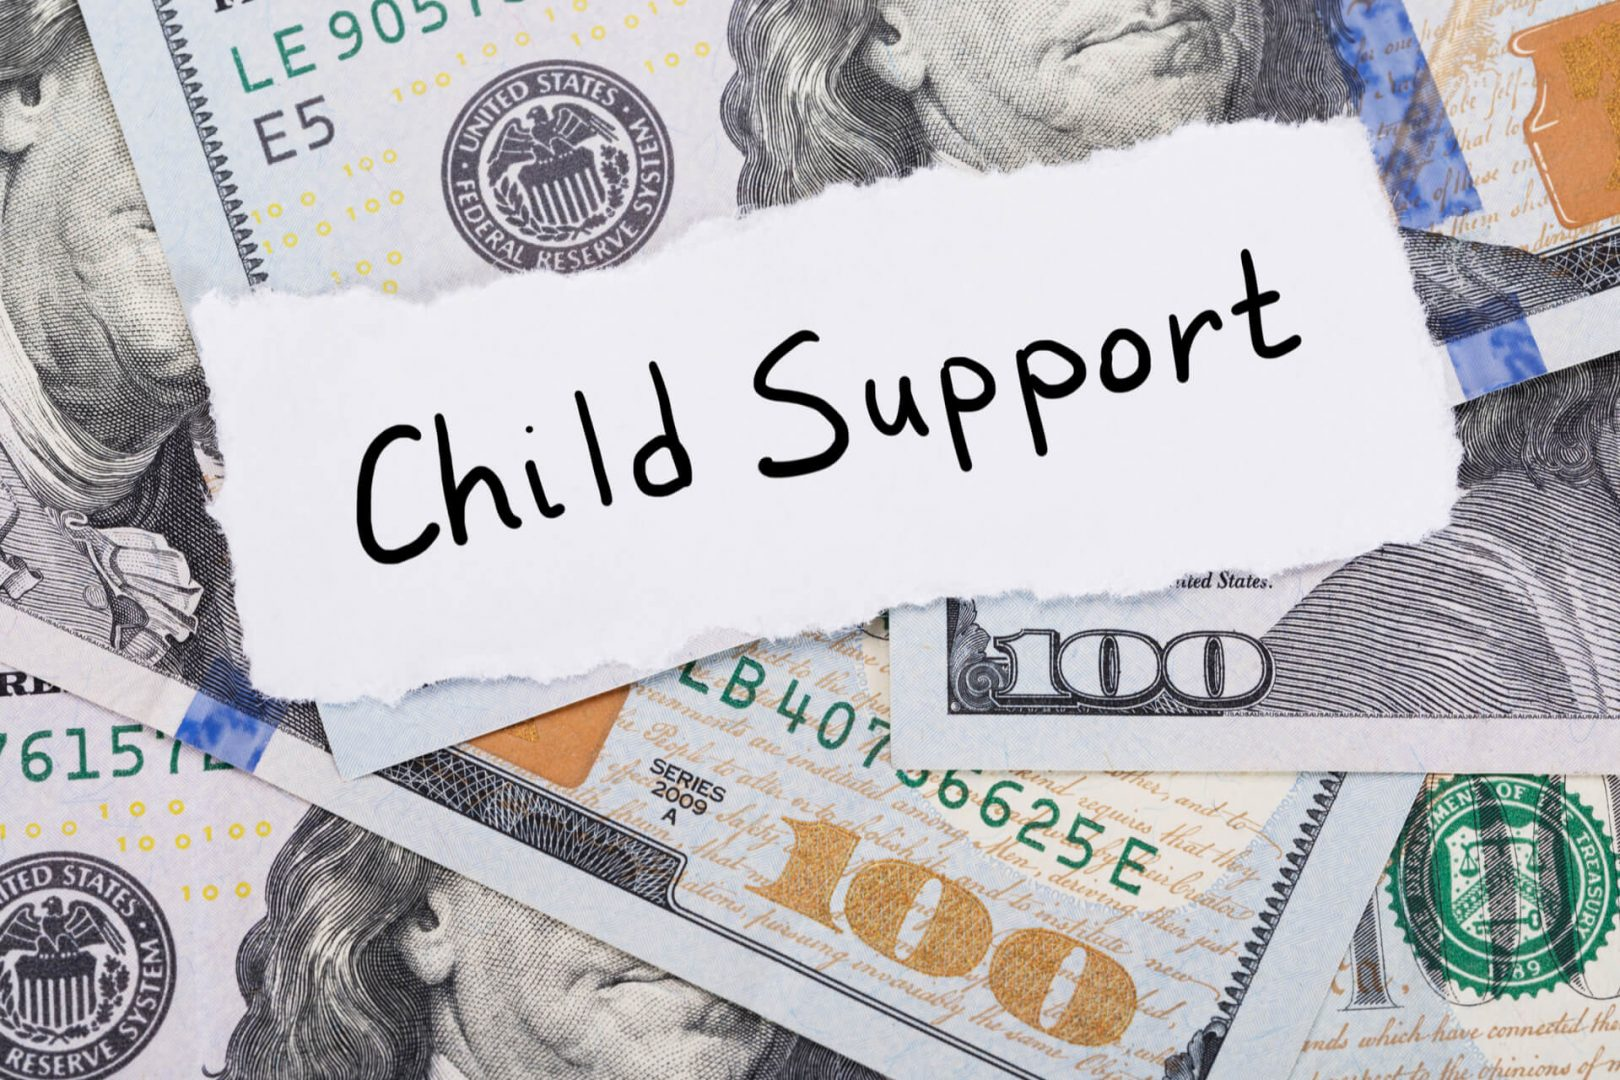 child-support-payment-hundred-dollar-bills